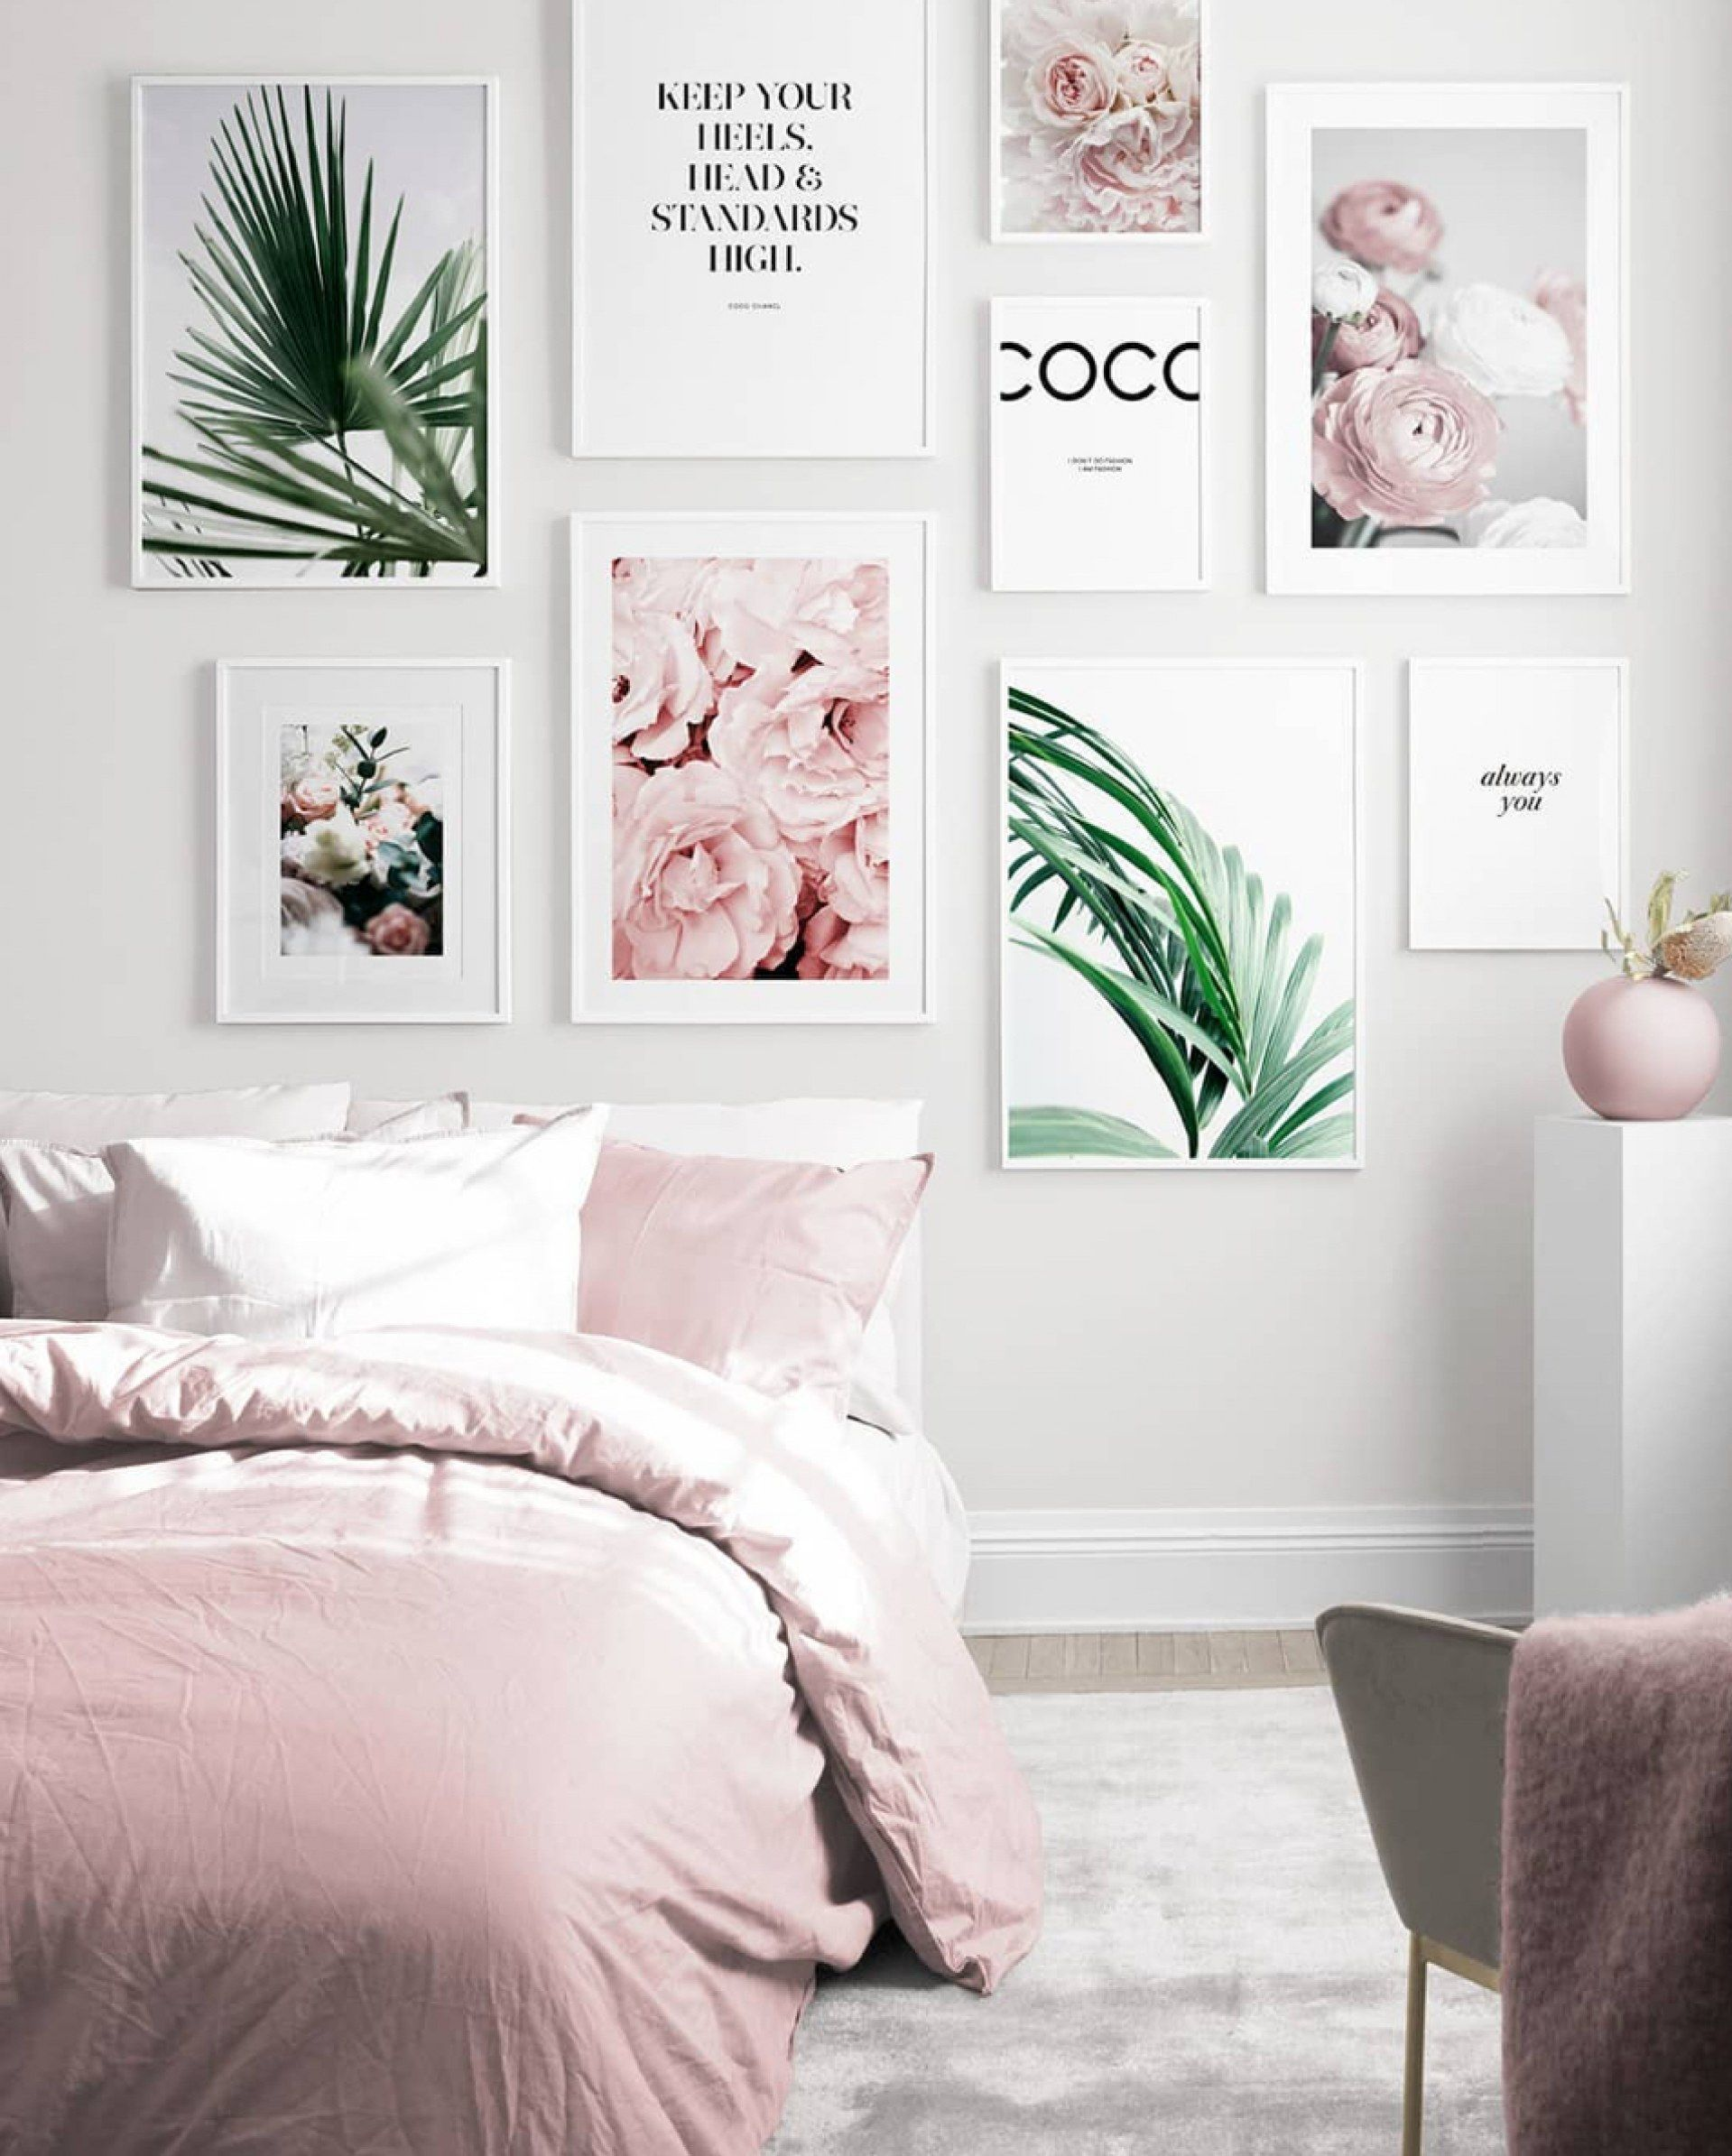 120 Decorating Ideas For A Wall Wall Decoration Pink Bedroom Walls Bedroom Wall Interior Design Living Room Bedroom wall decor ideas